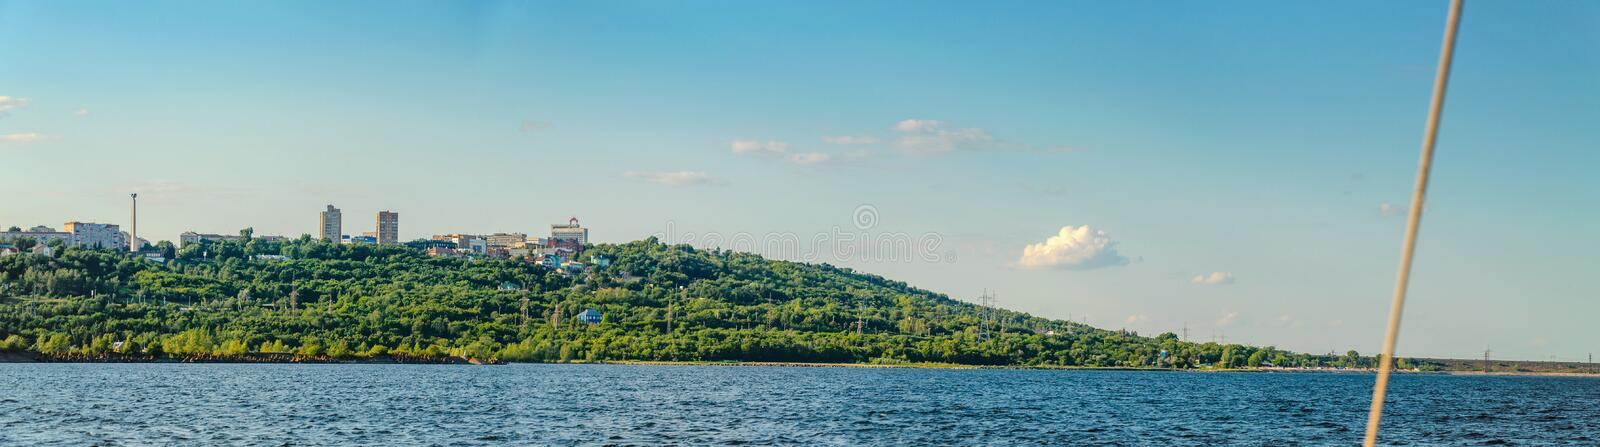 Ulyanovsk, Russia - July 20, 2019. Panorama of the city of Ulyanovsk from the Volga river, Russia royalty free stock photography